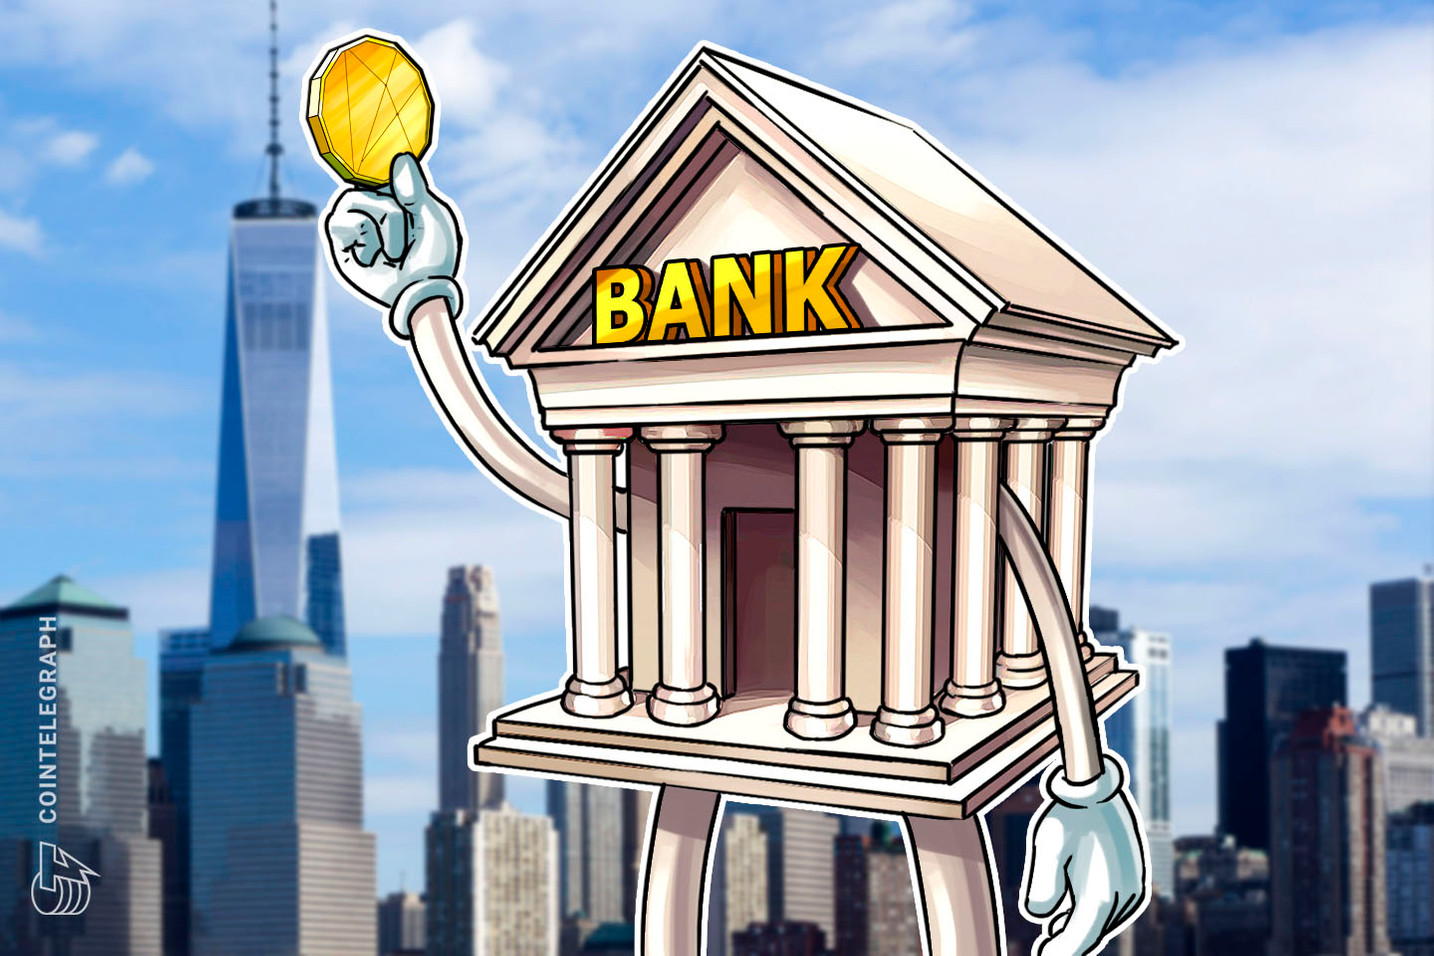 New York Financial Regulators Approve Blockchain Payments System